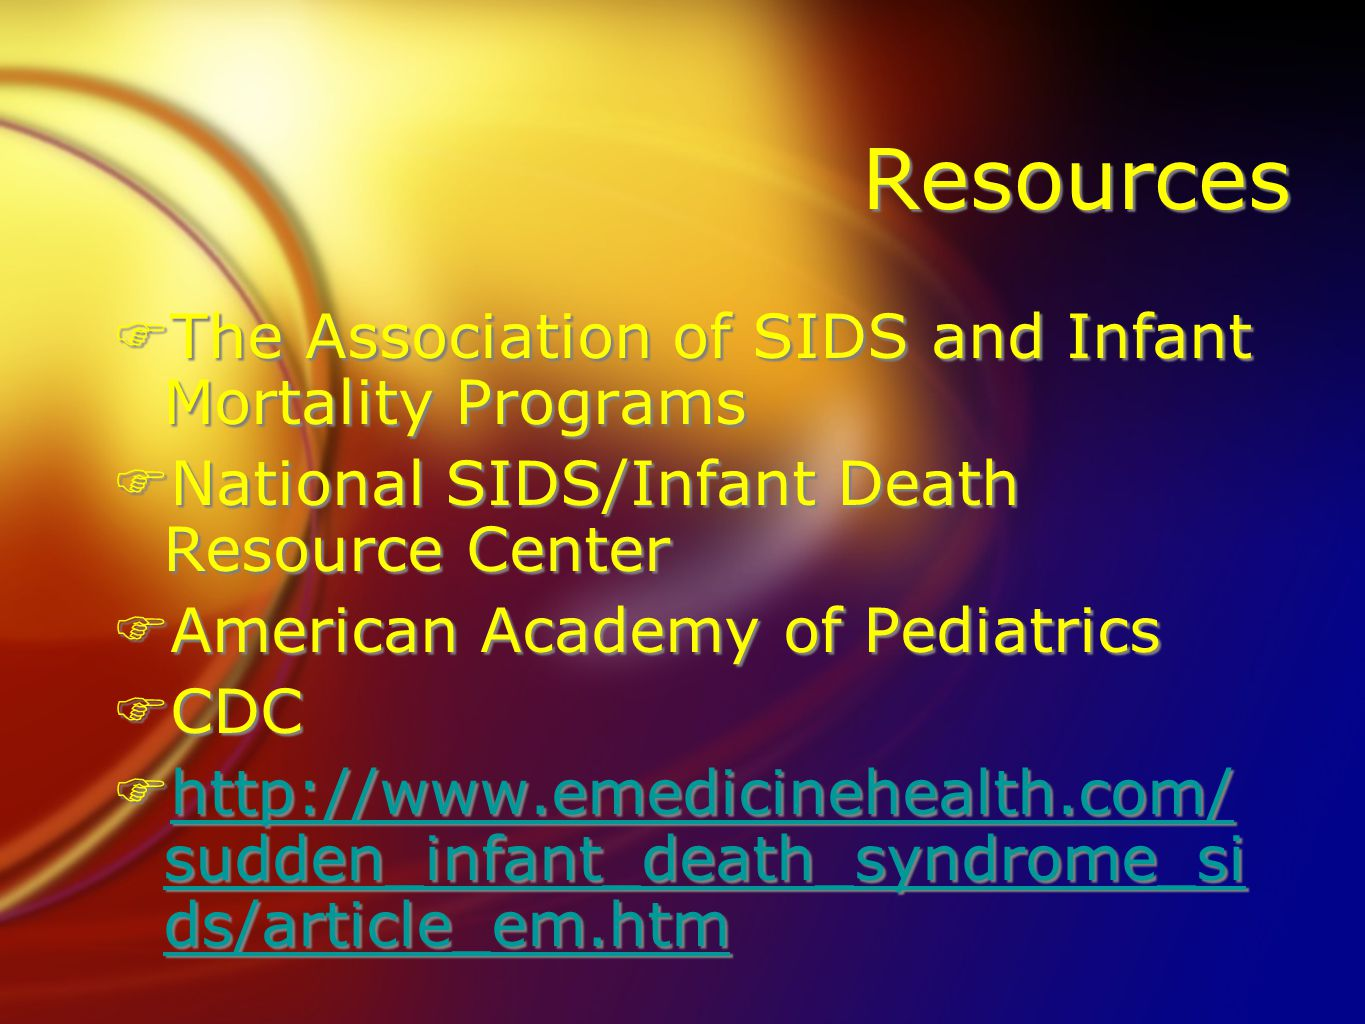 Resources FThe Association of SIDS and Infant Mortality Programs FNational SIDS/Infant Death Resource Center FAmerican Academy of Pediatrics FCDC Fhttp://www.emedicinehealth.com/ sudden_infant_death_syndrome_si ds/article_em.htmhttp://www.emedicinehealth.com/ sudden_infant_death_syndrome_si ds/article_em.htm